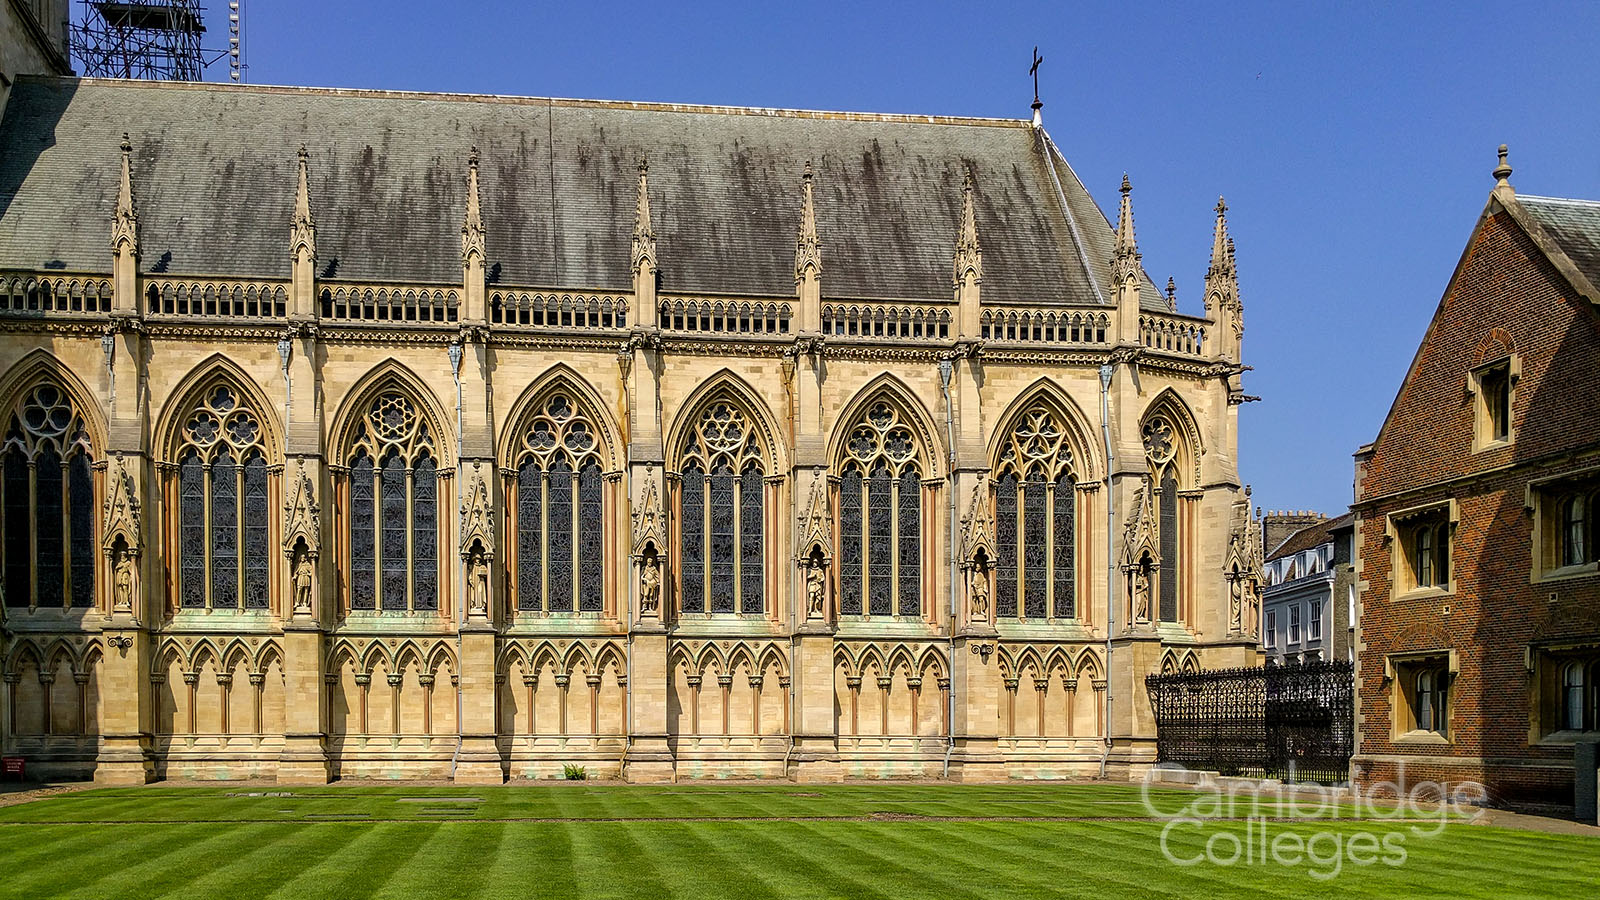 st johns college chapel, seen from inside first court